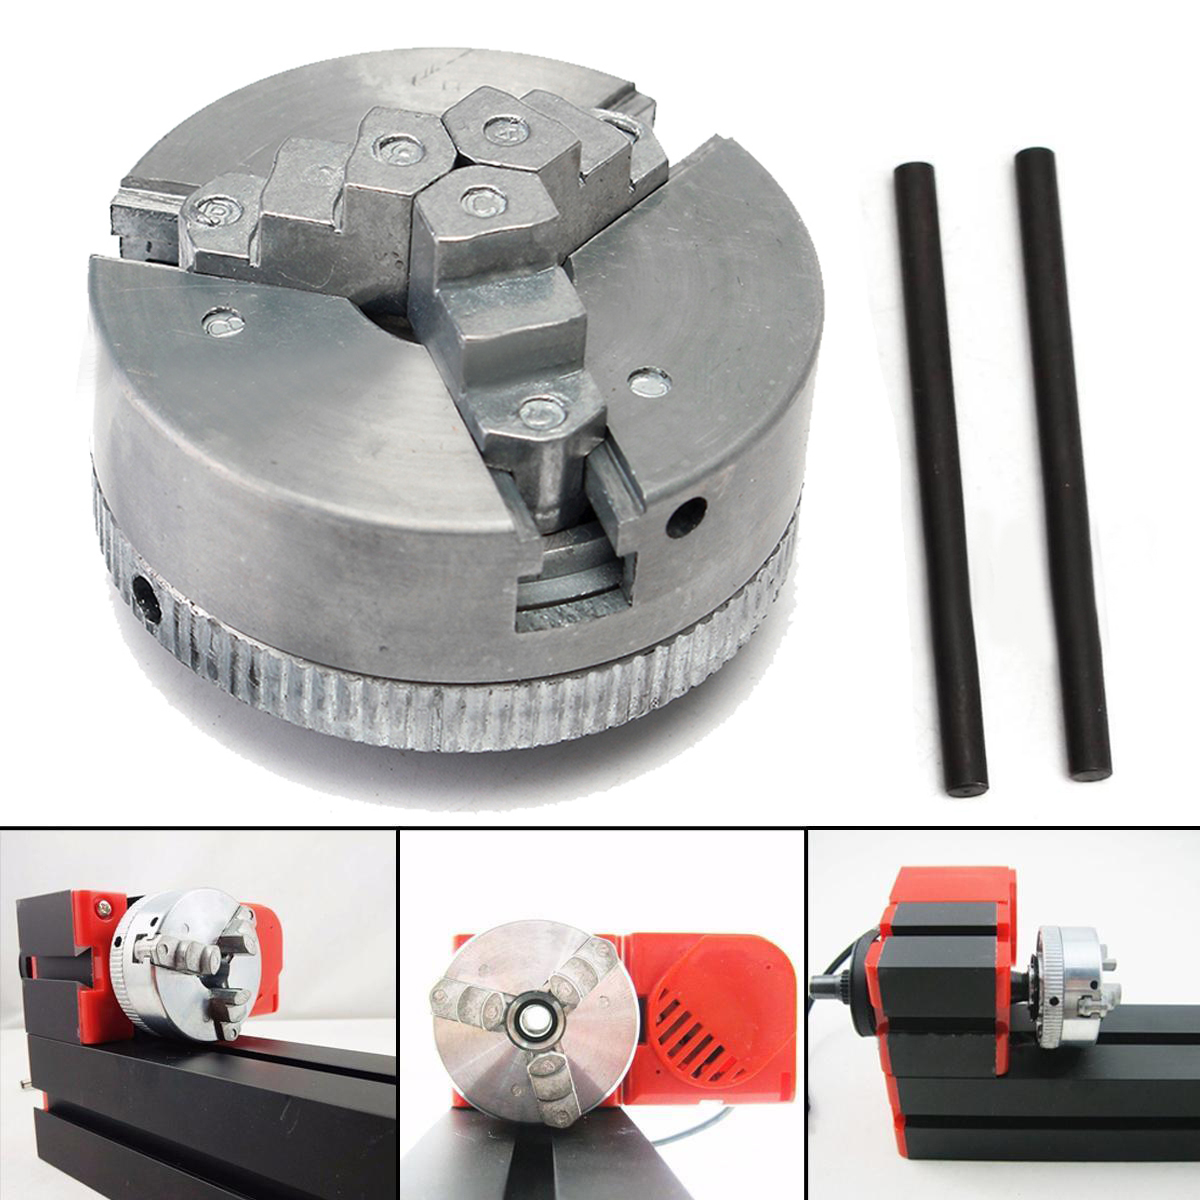 1pc 3 Jaw Lathe Chuck Metal Self Centering Hardened Chuck M12x1 45mm + 2pcs Lock Rods with Shock Resistance horoz торшер horoz aras hl009l 3w 3000k черный 046 002 0003 hrz00000769